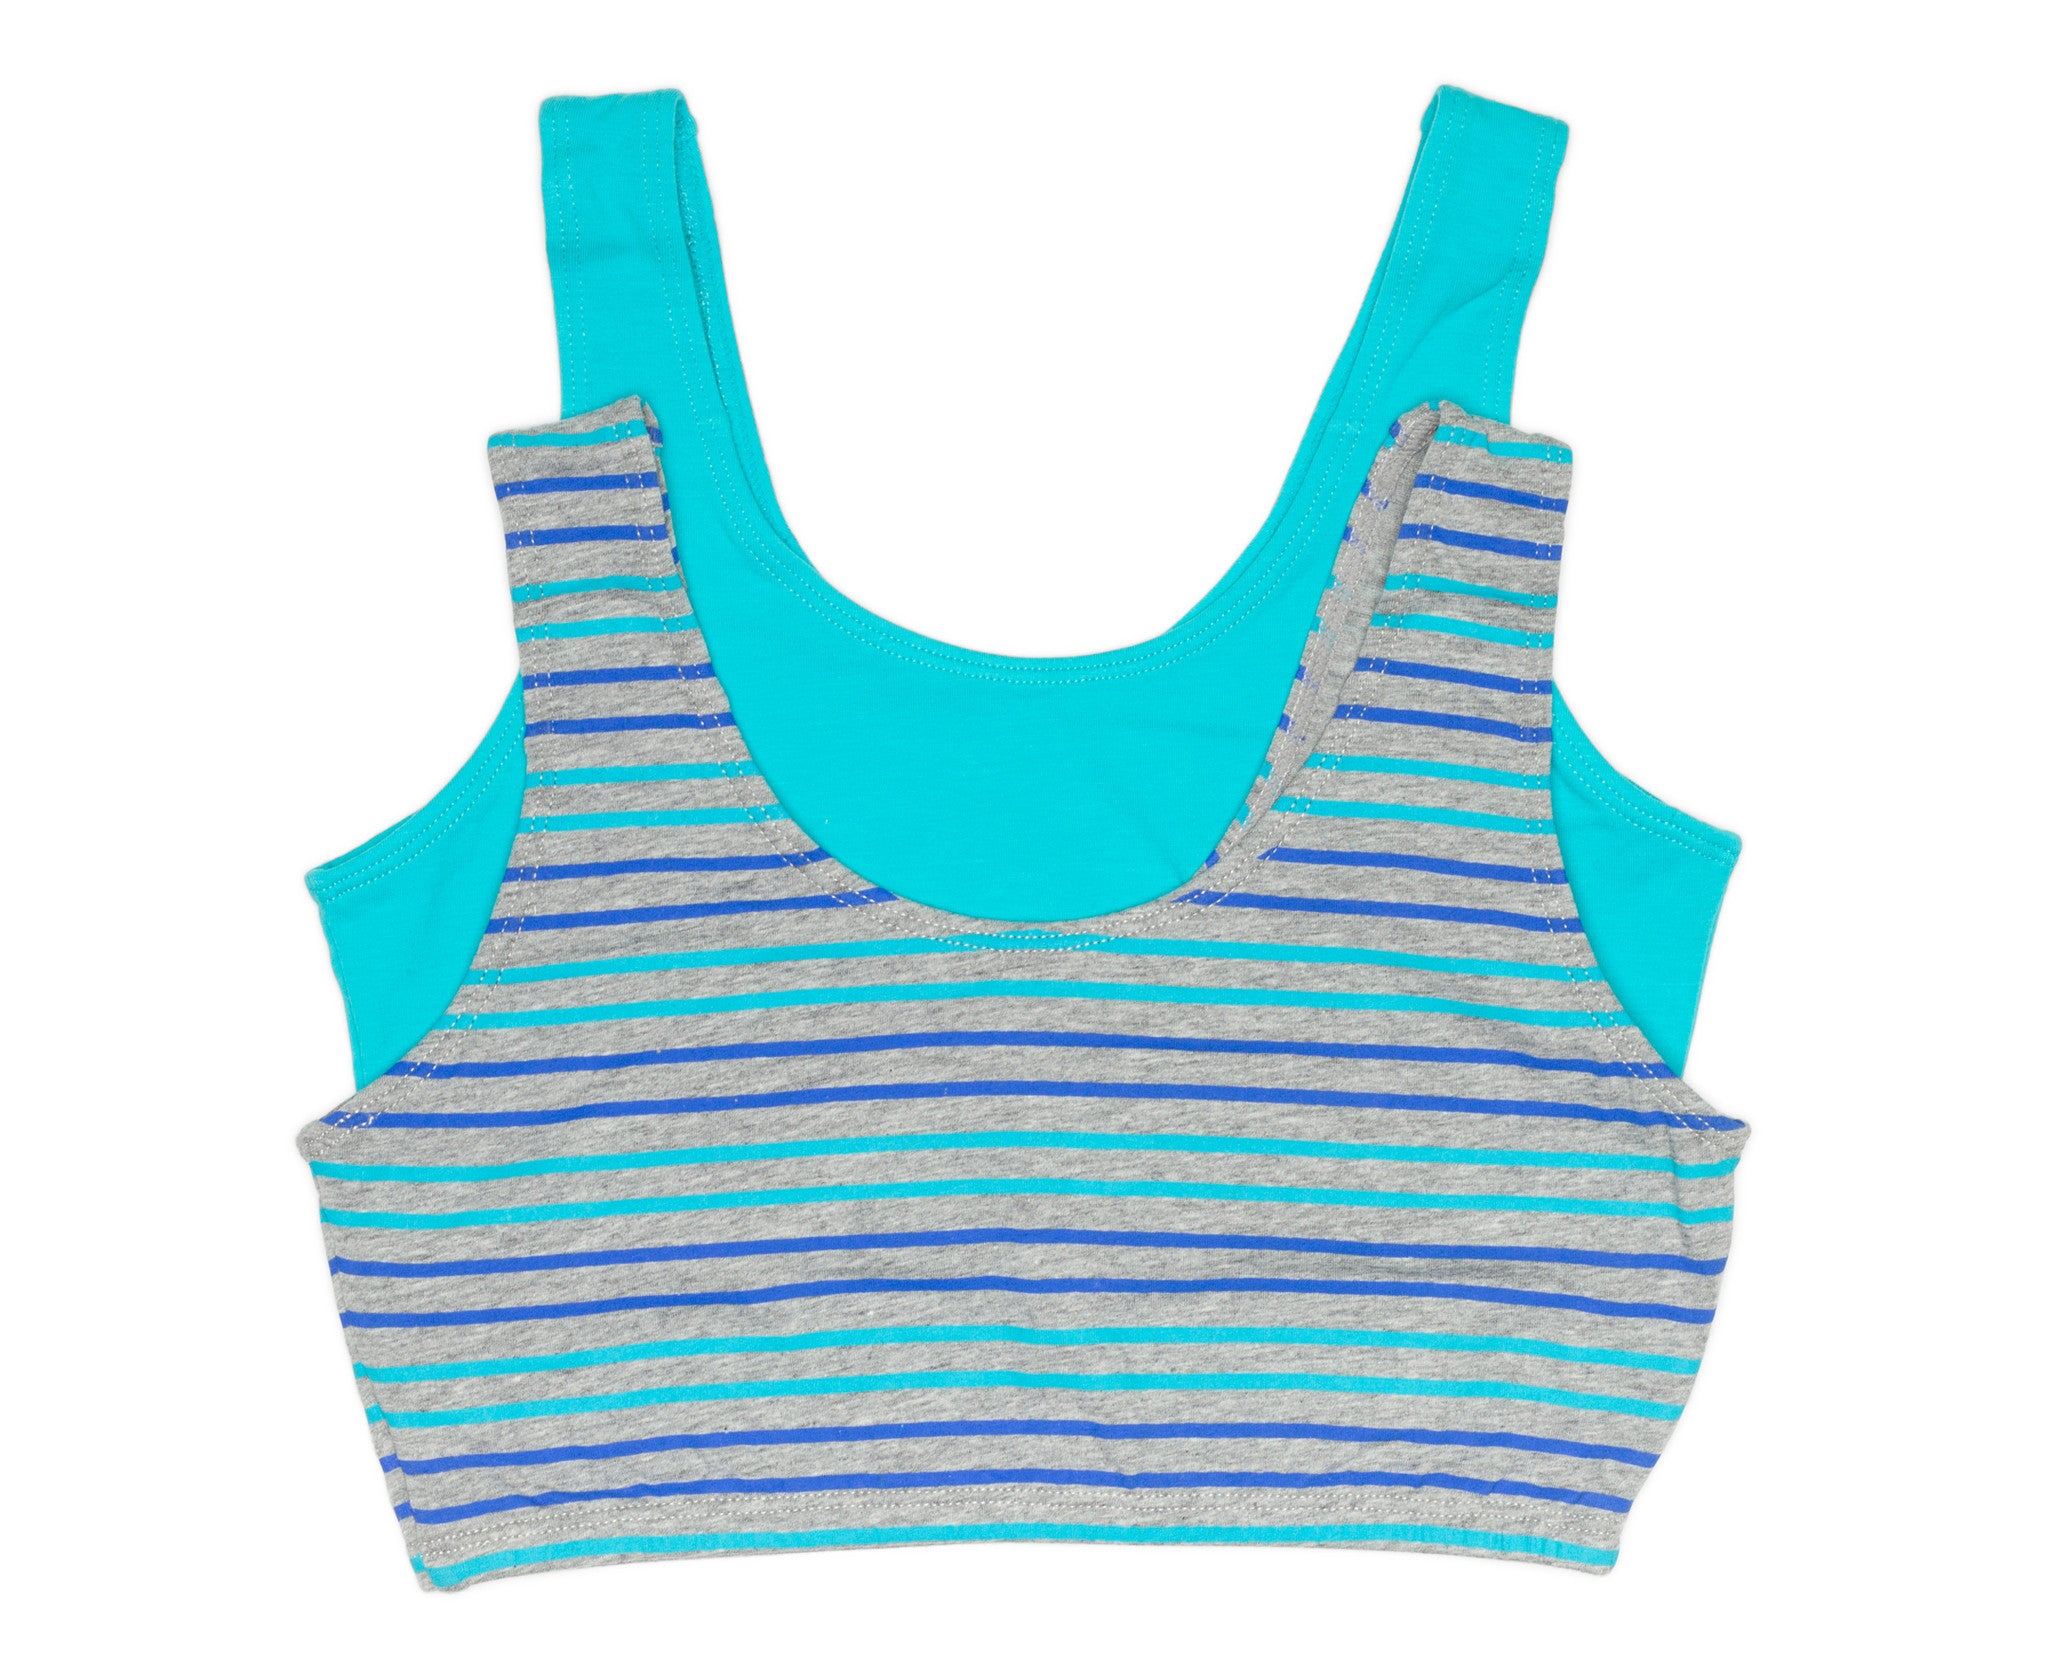 Girls 2-Pack Crop Bra with Built Up Straps (Aqua/Grey Mix Stripes)